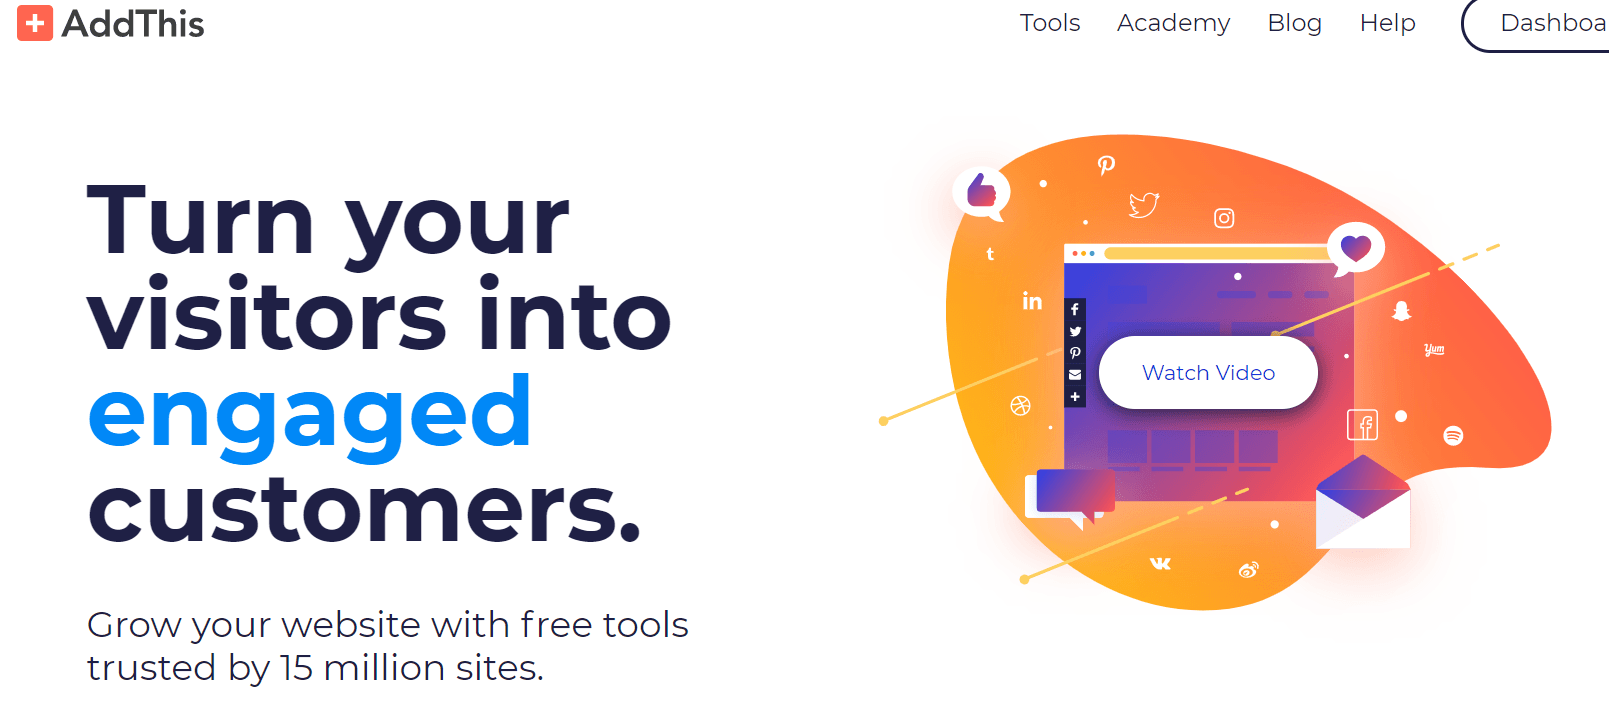 AddThis content tool